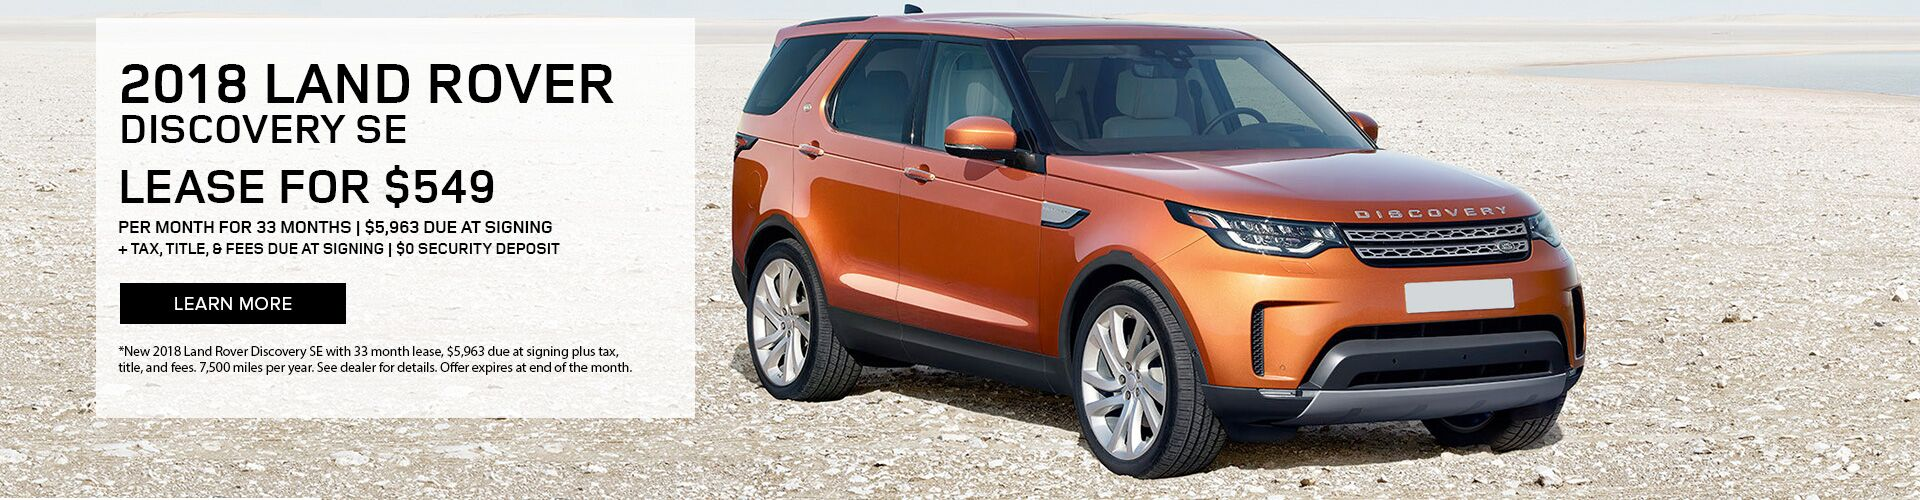 2018 Land Rover Discovery lease special